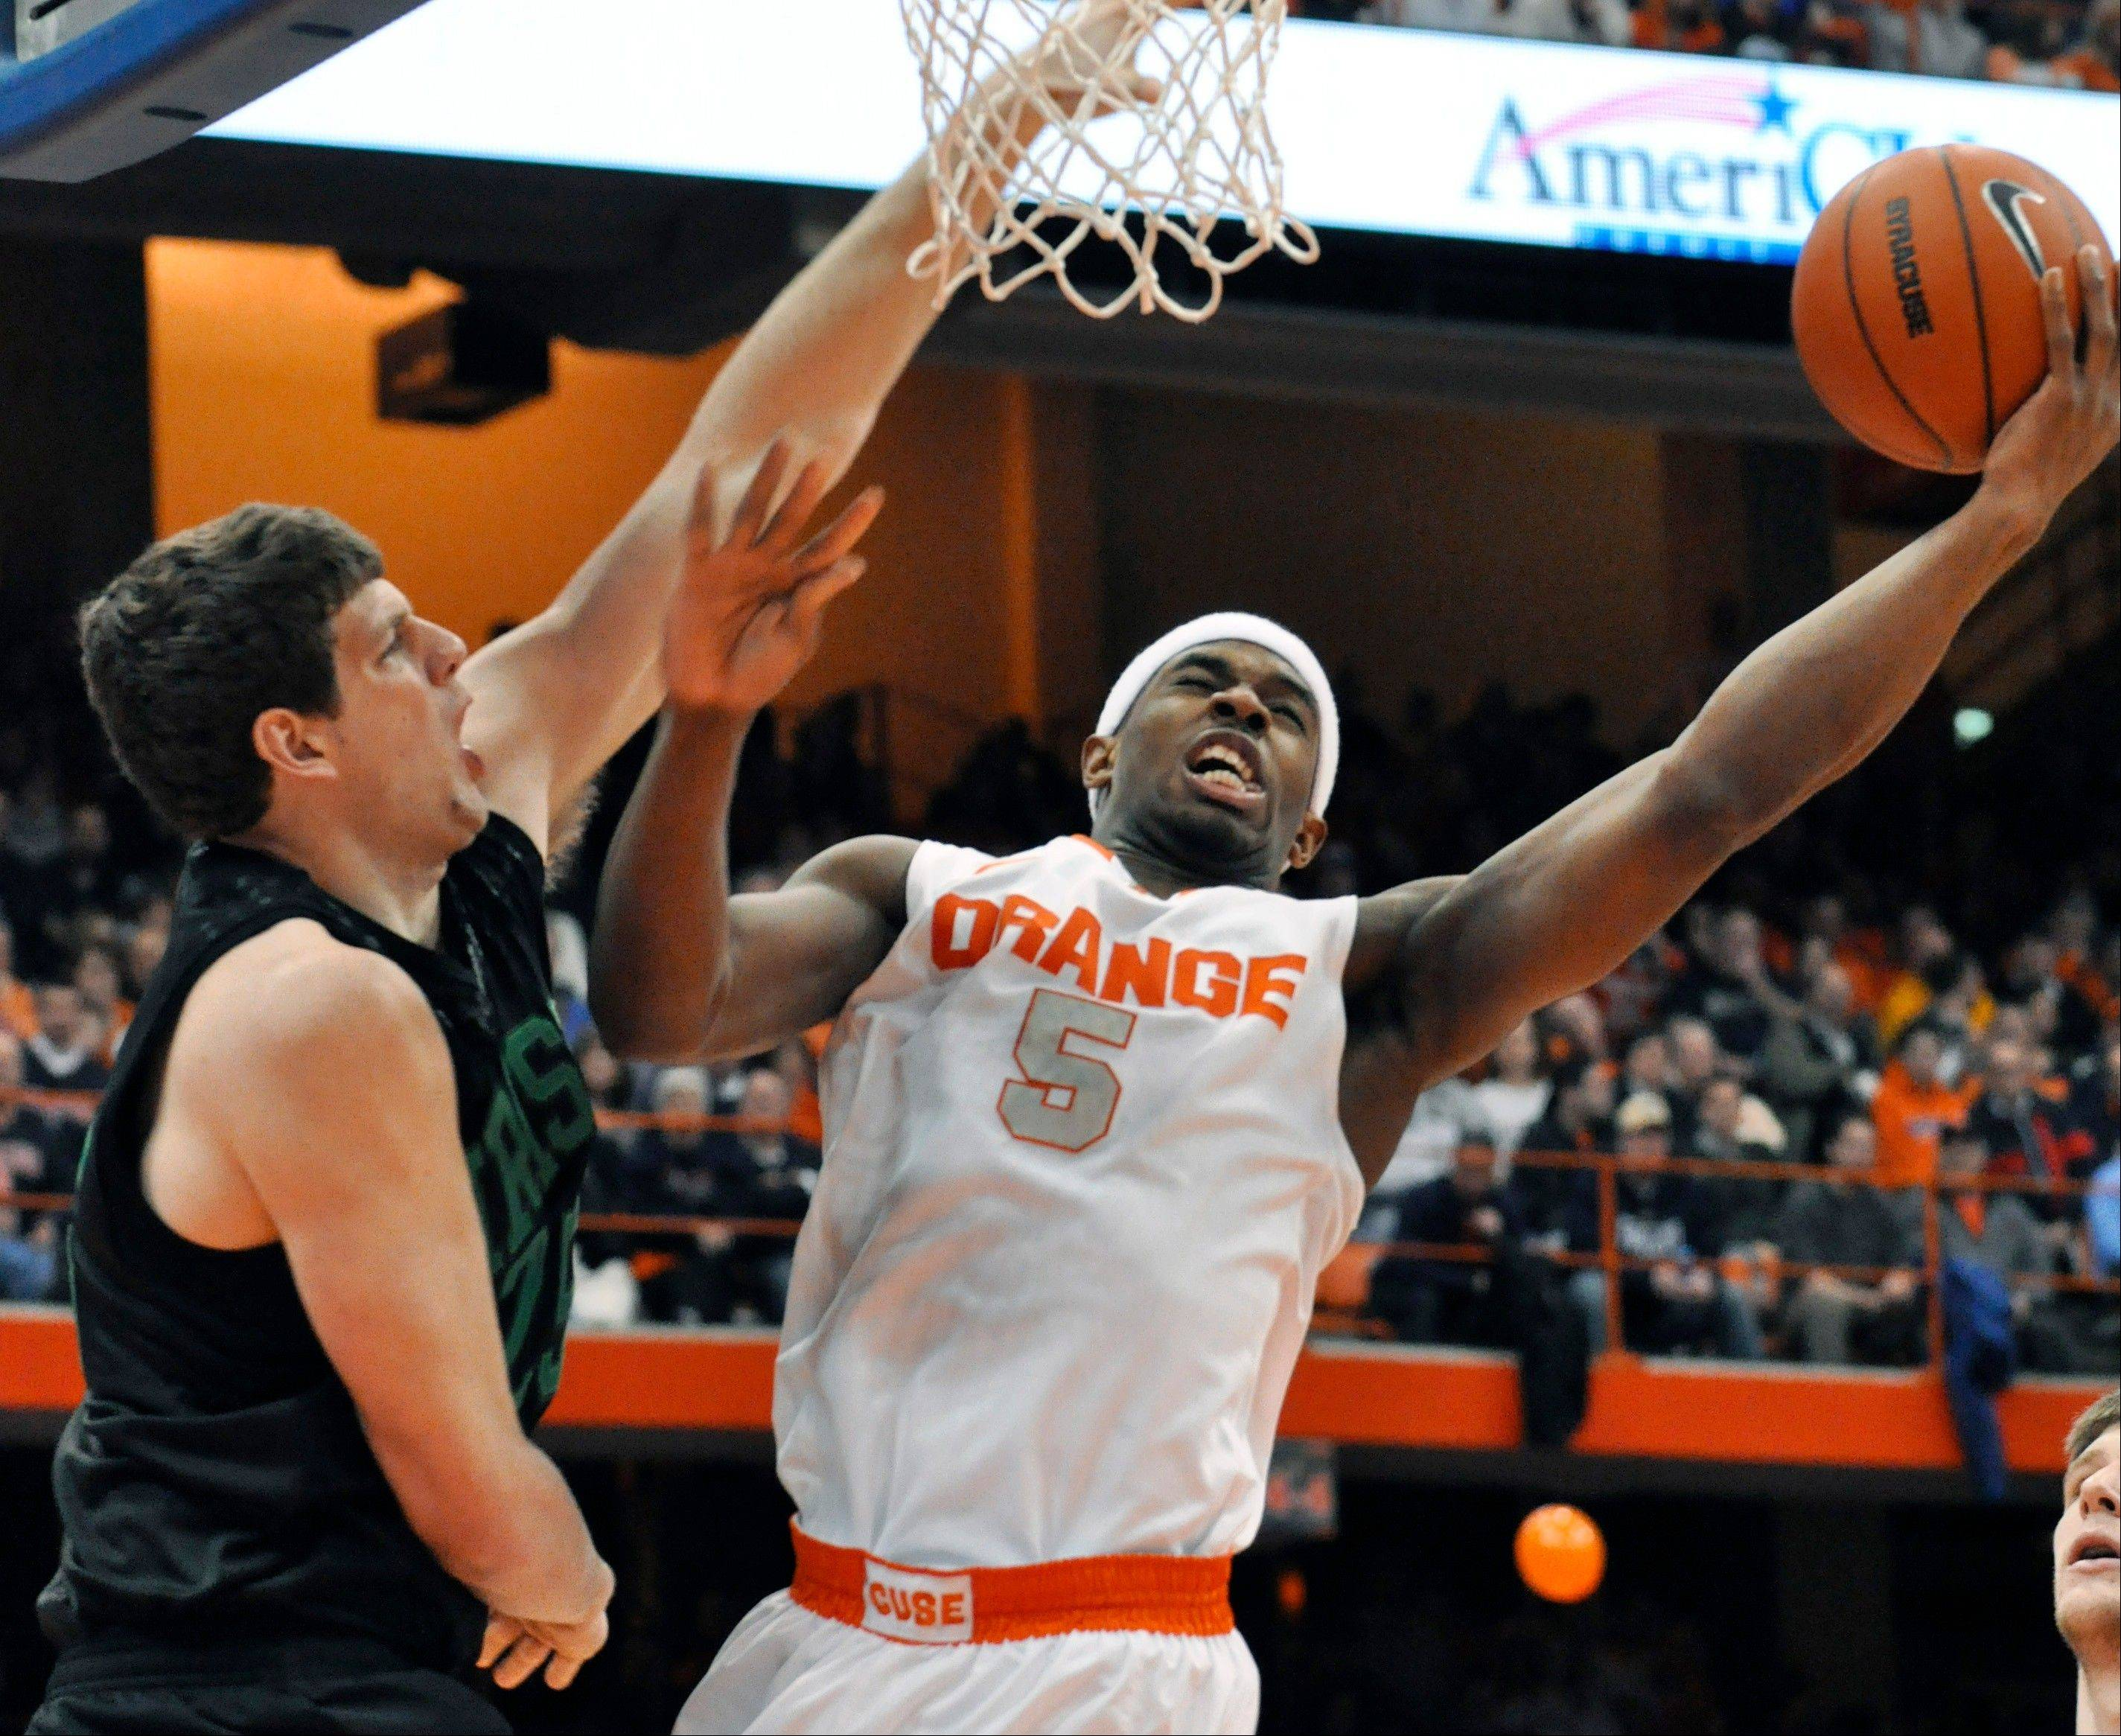 Syracuse's C.J. Fair scores against Notre Dame's Tom Knight during the second half of Monday's game in Syracuse, N.Y.